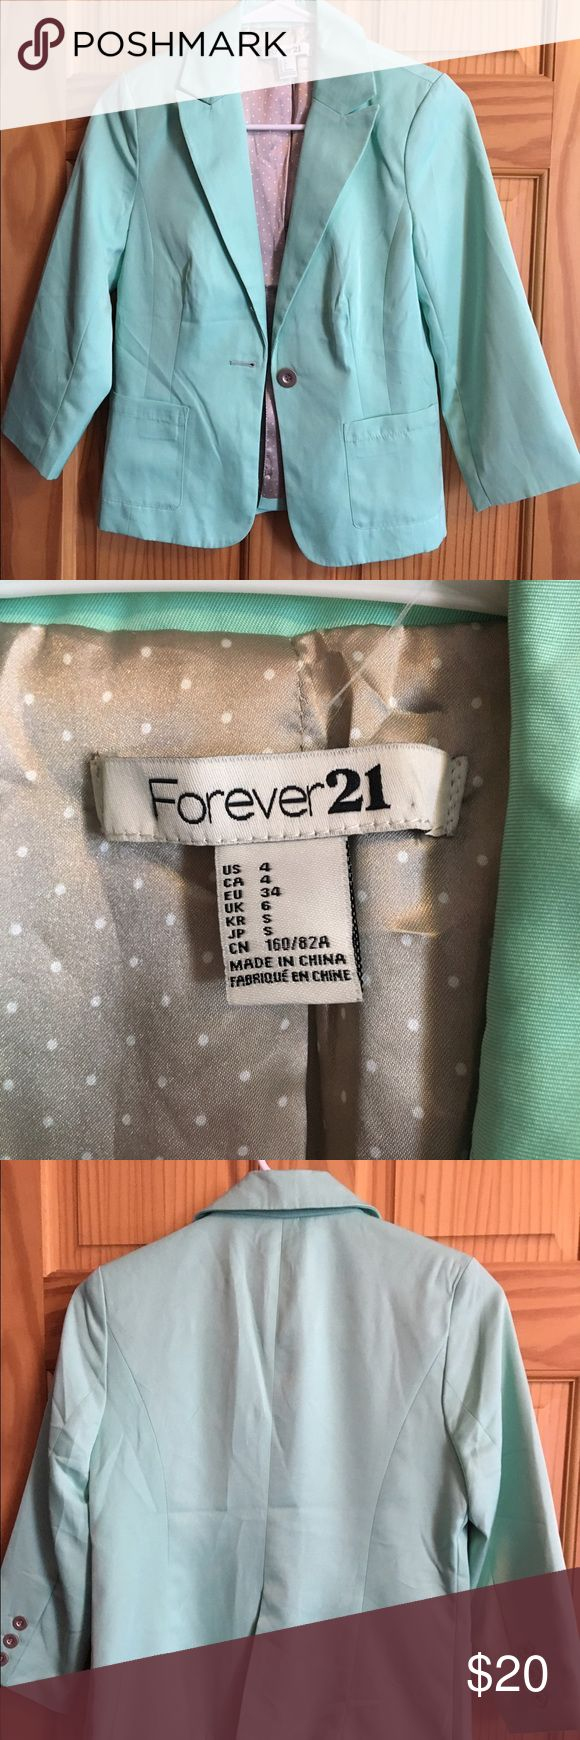 Mint green blazer Mint green blazer. Super cute for spring. The close up photos show the coloring best. Forever 21 Jackets & Coats Blazers